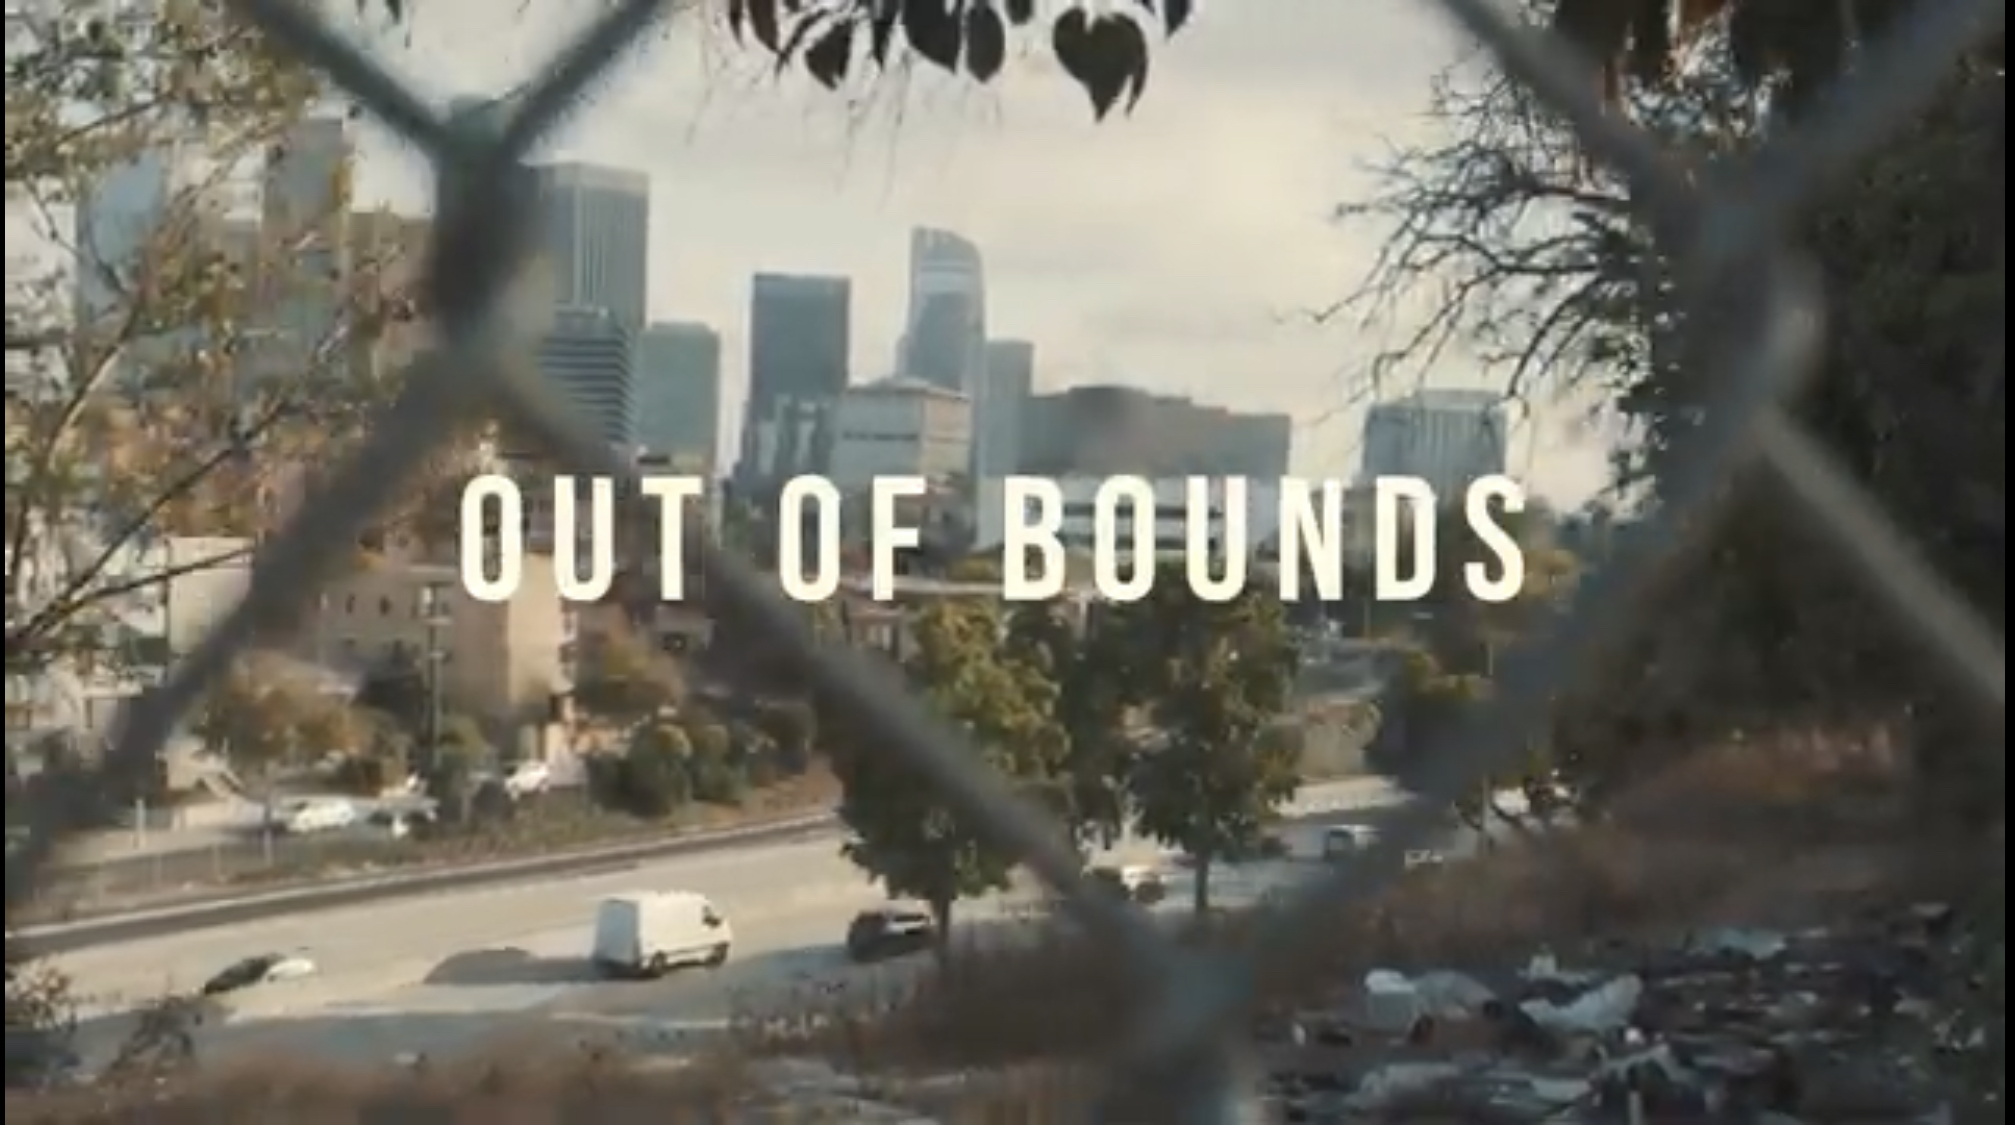 Pawz One & DJ Dister - Out Of Bounds (Official Music Video)